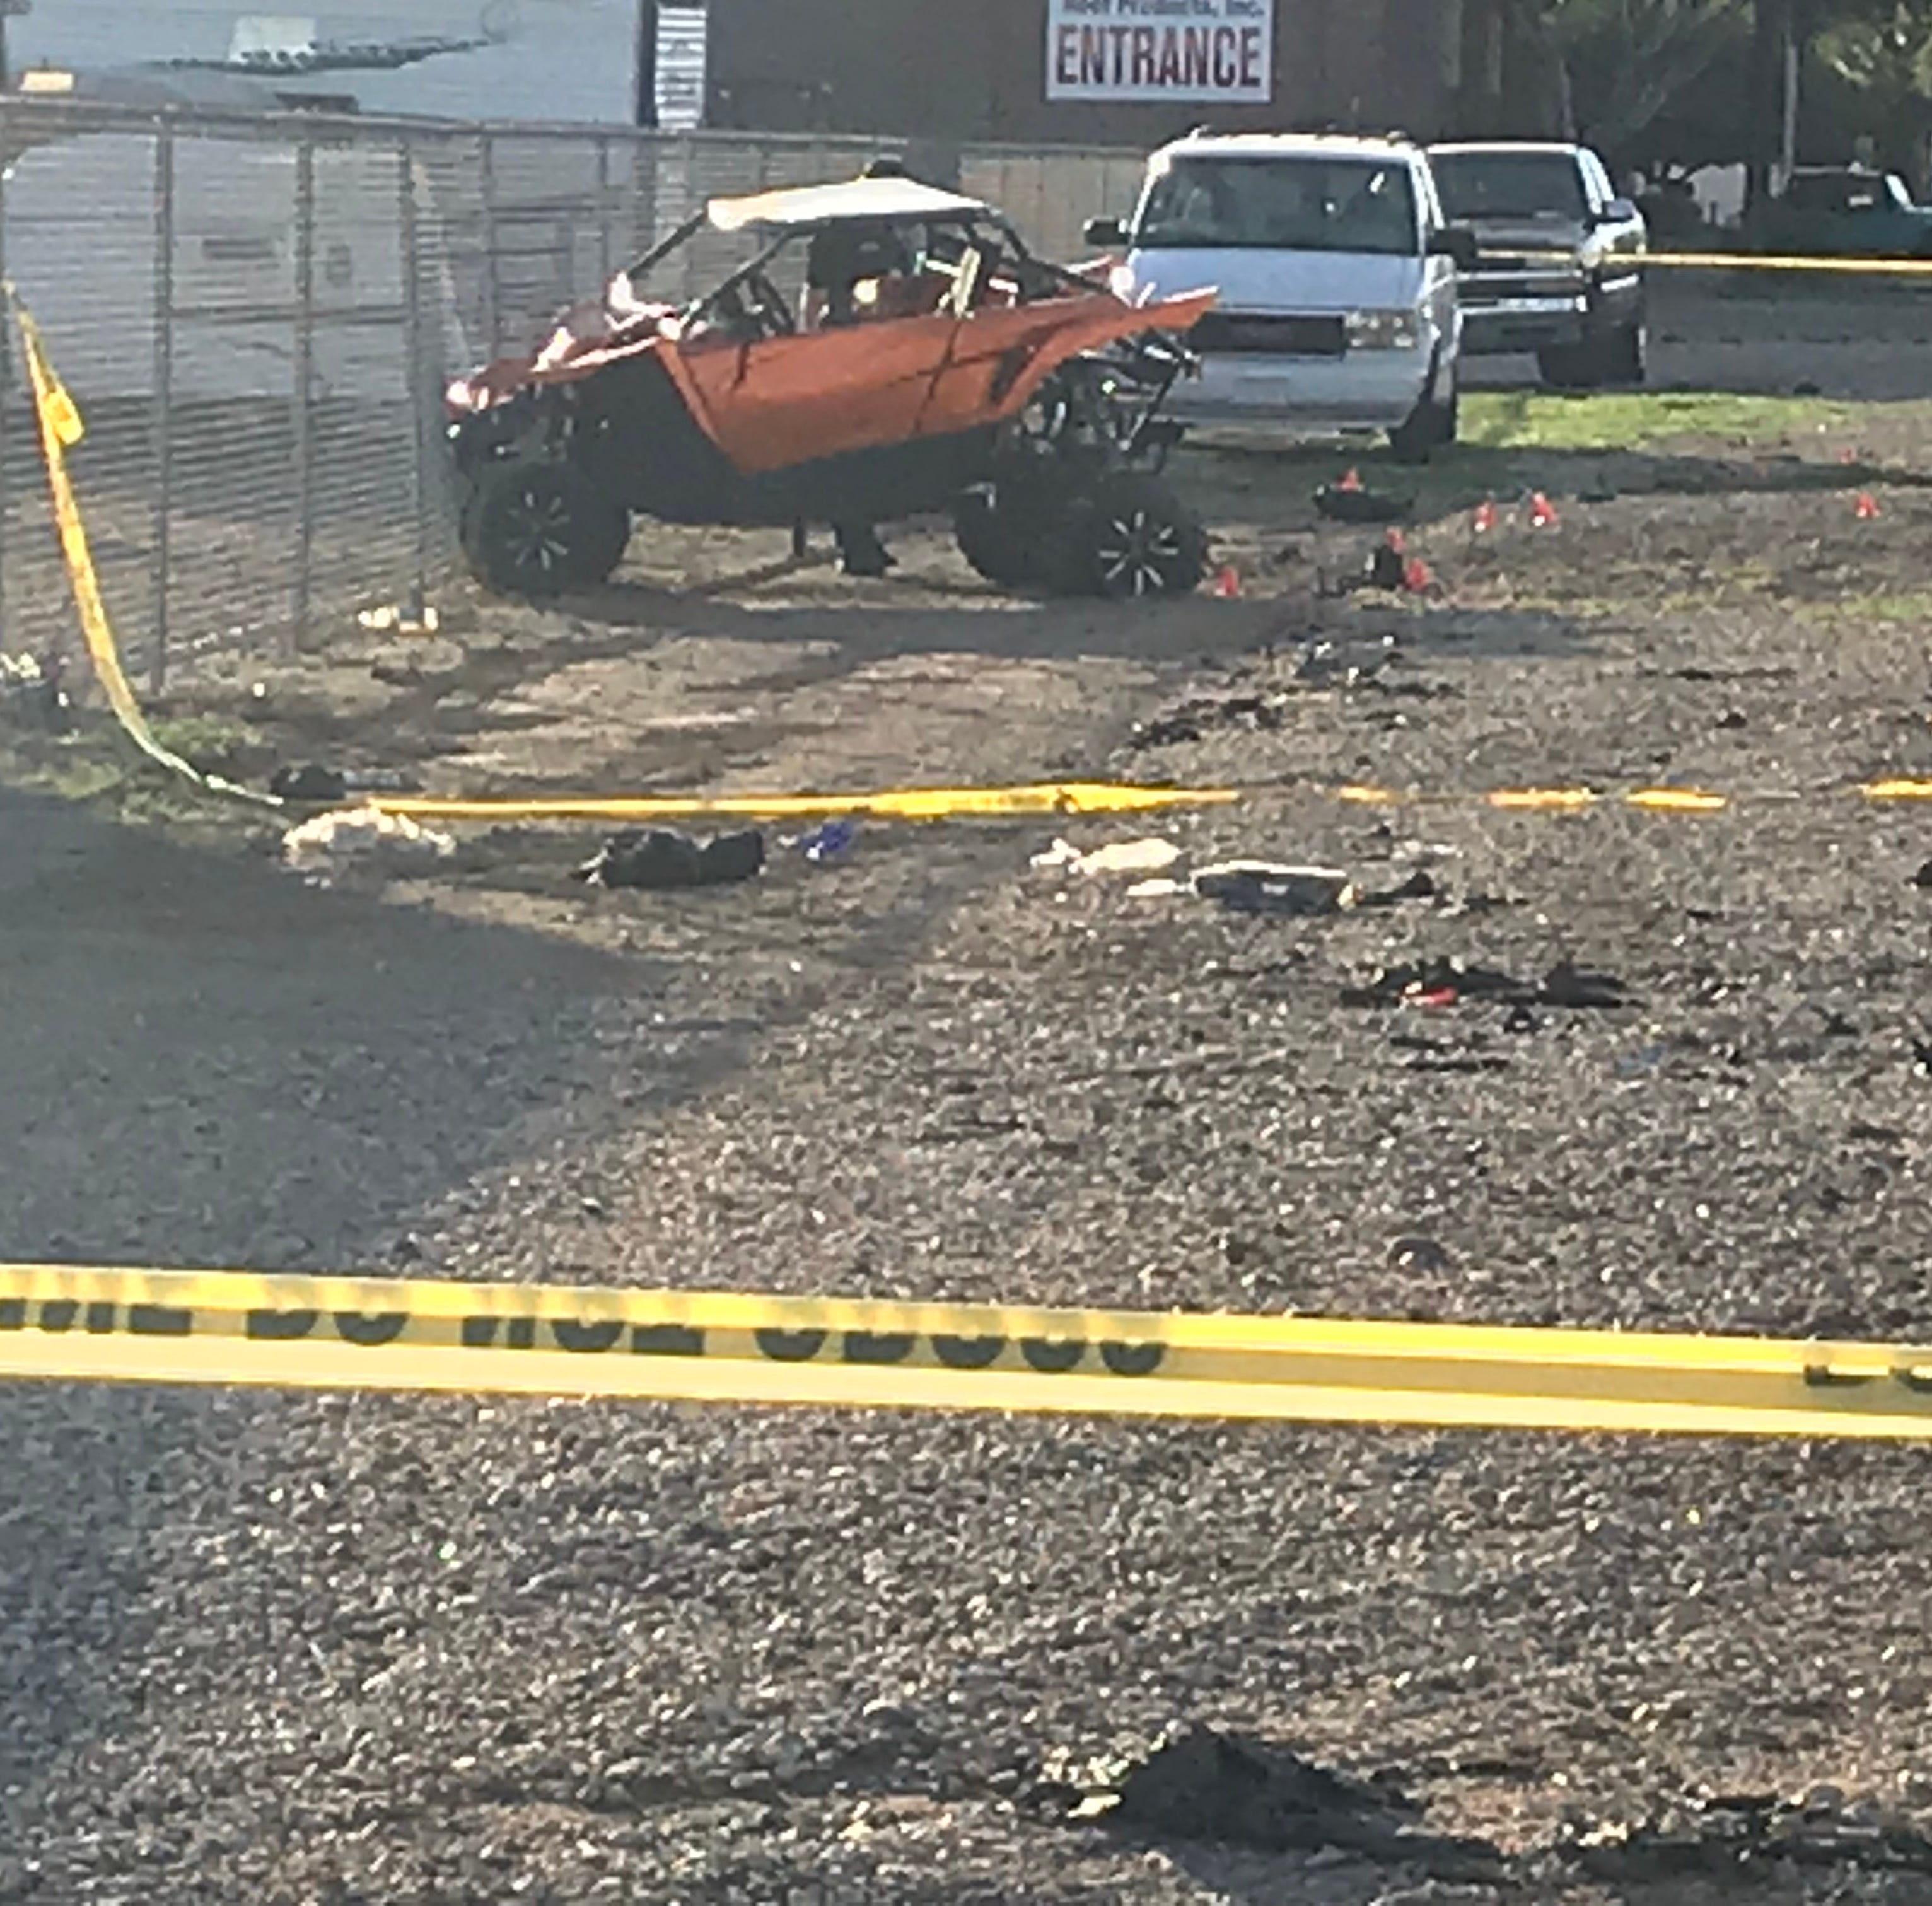 Victims identified in Glendale ATV crash